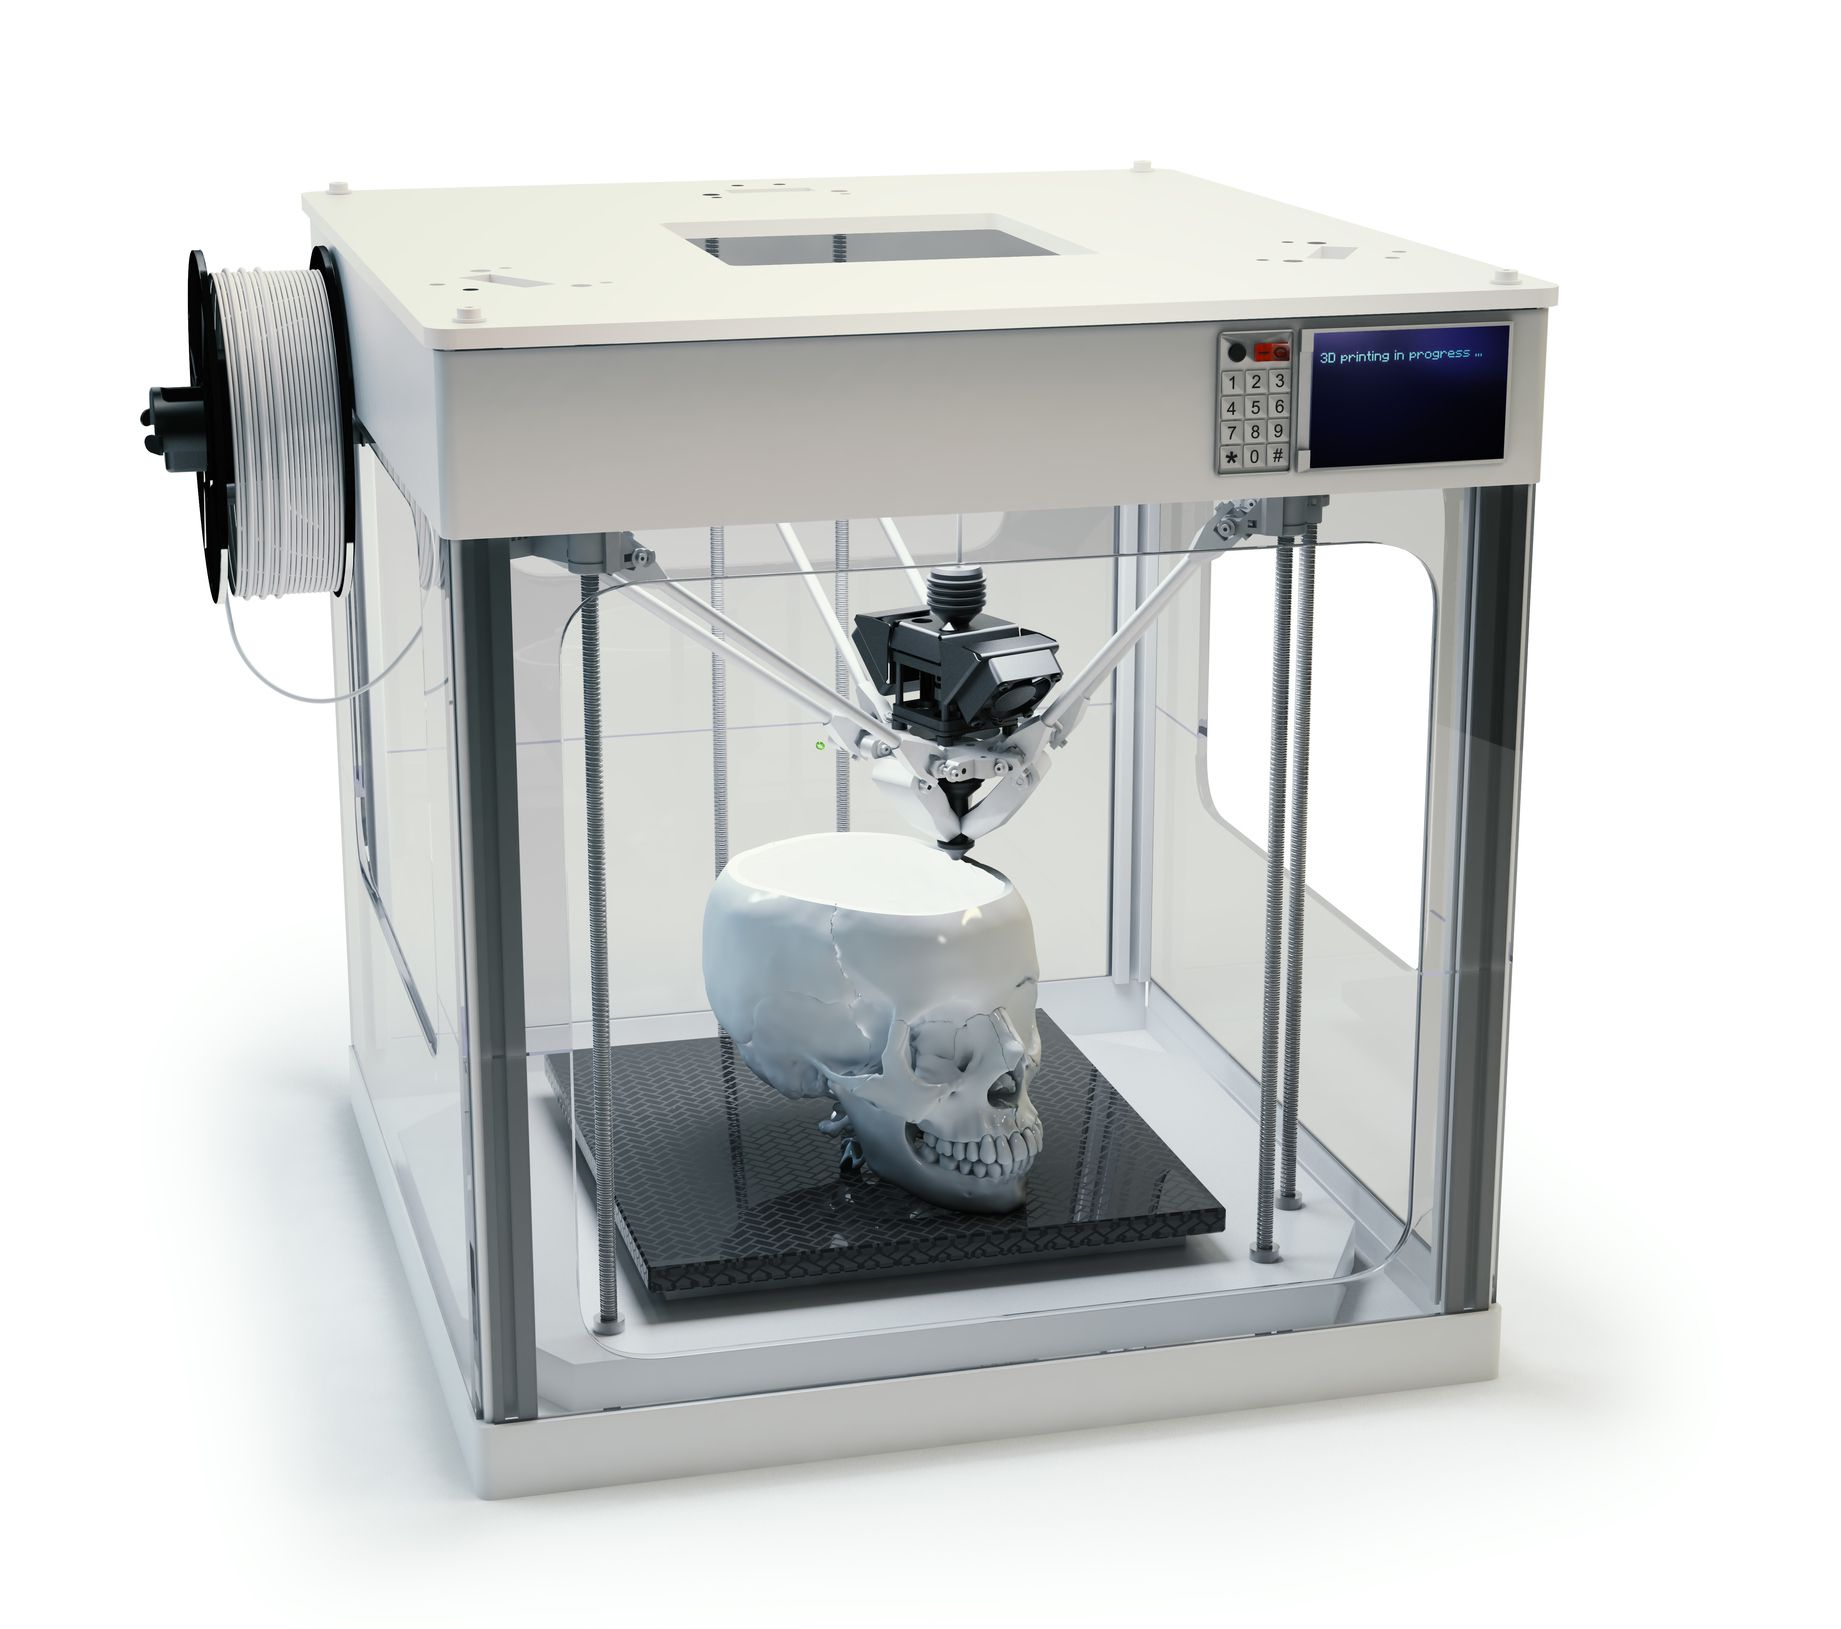 This is an image of Bright Printable 3d Printer